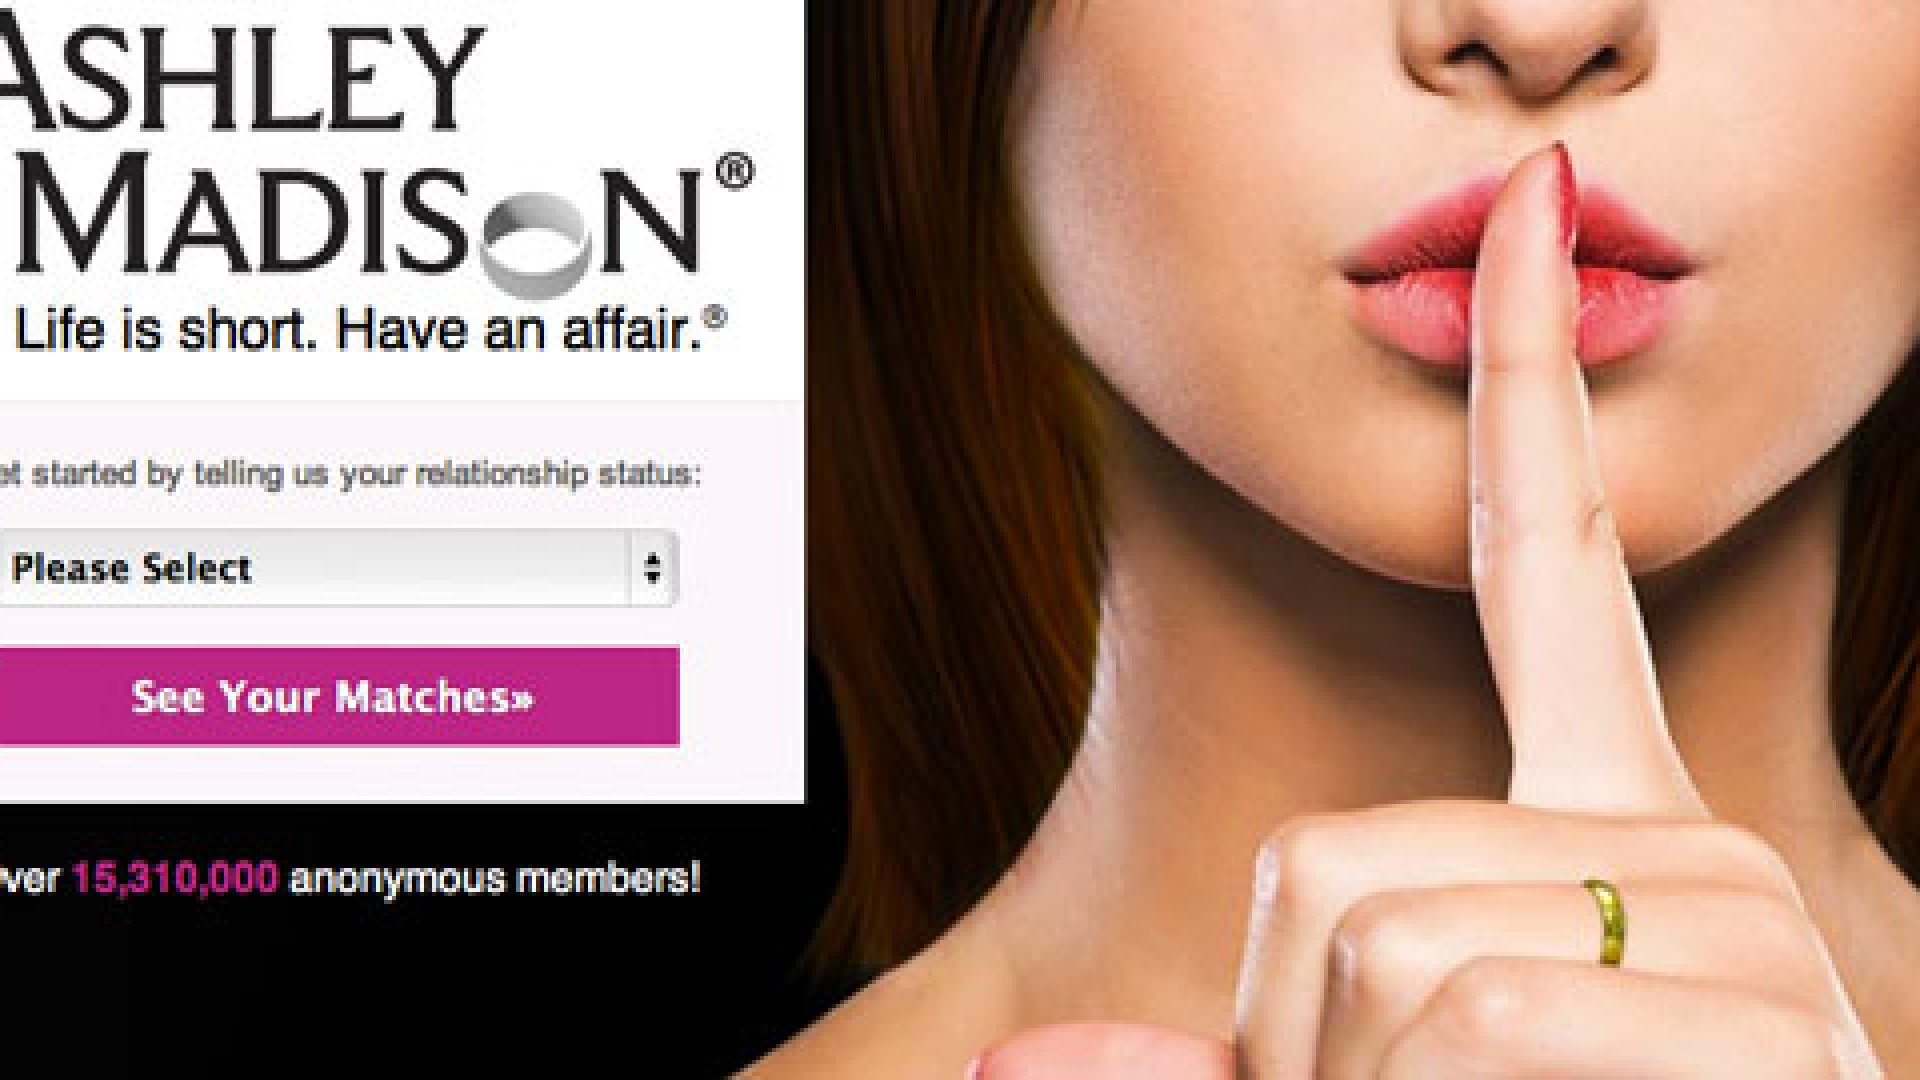 9 Questions for Ashley Madison's Founder